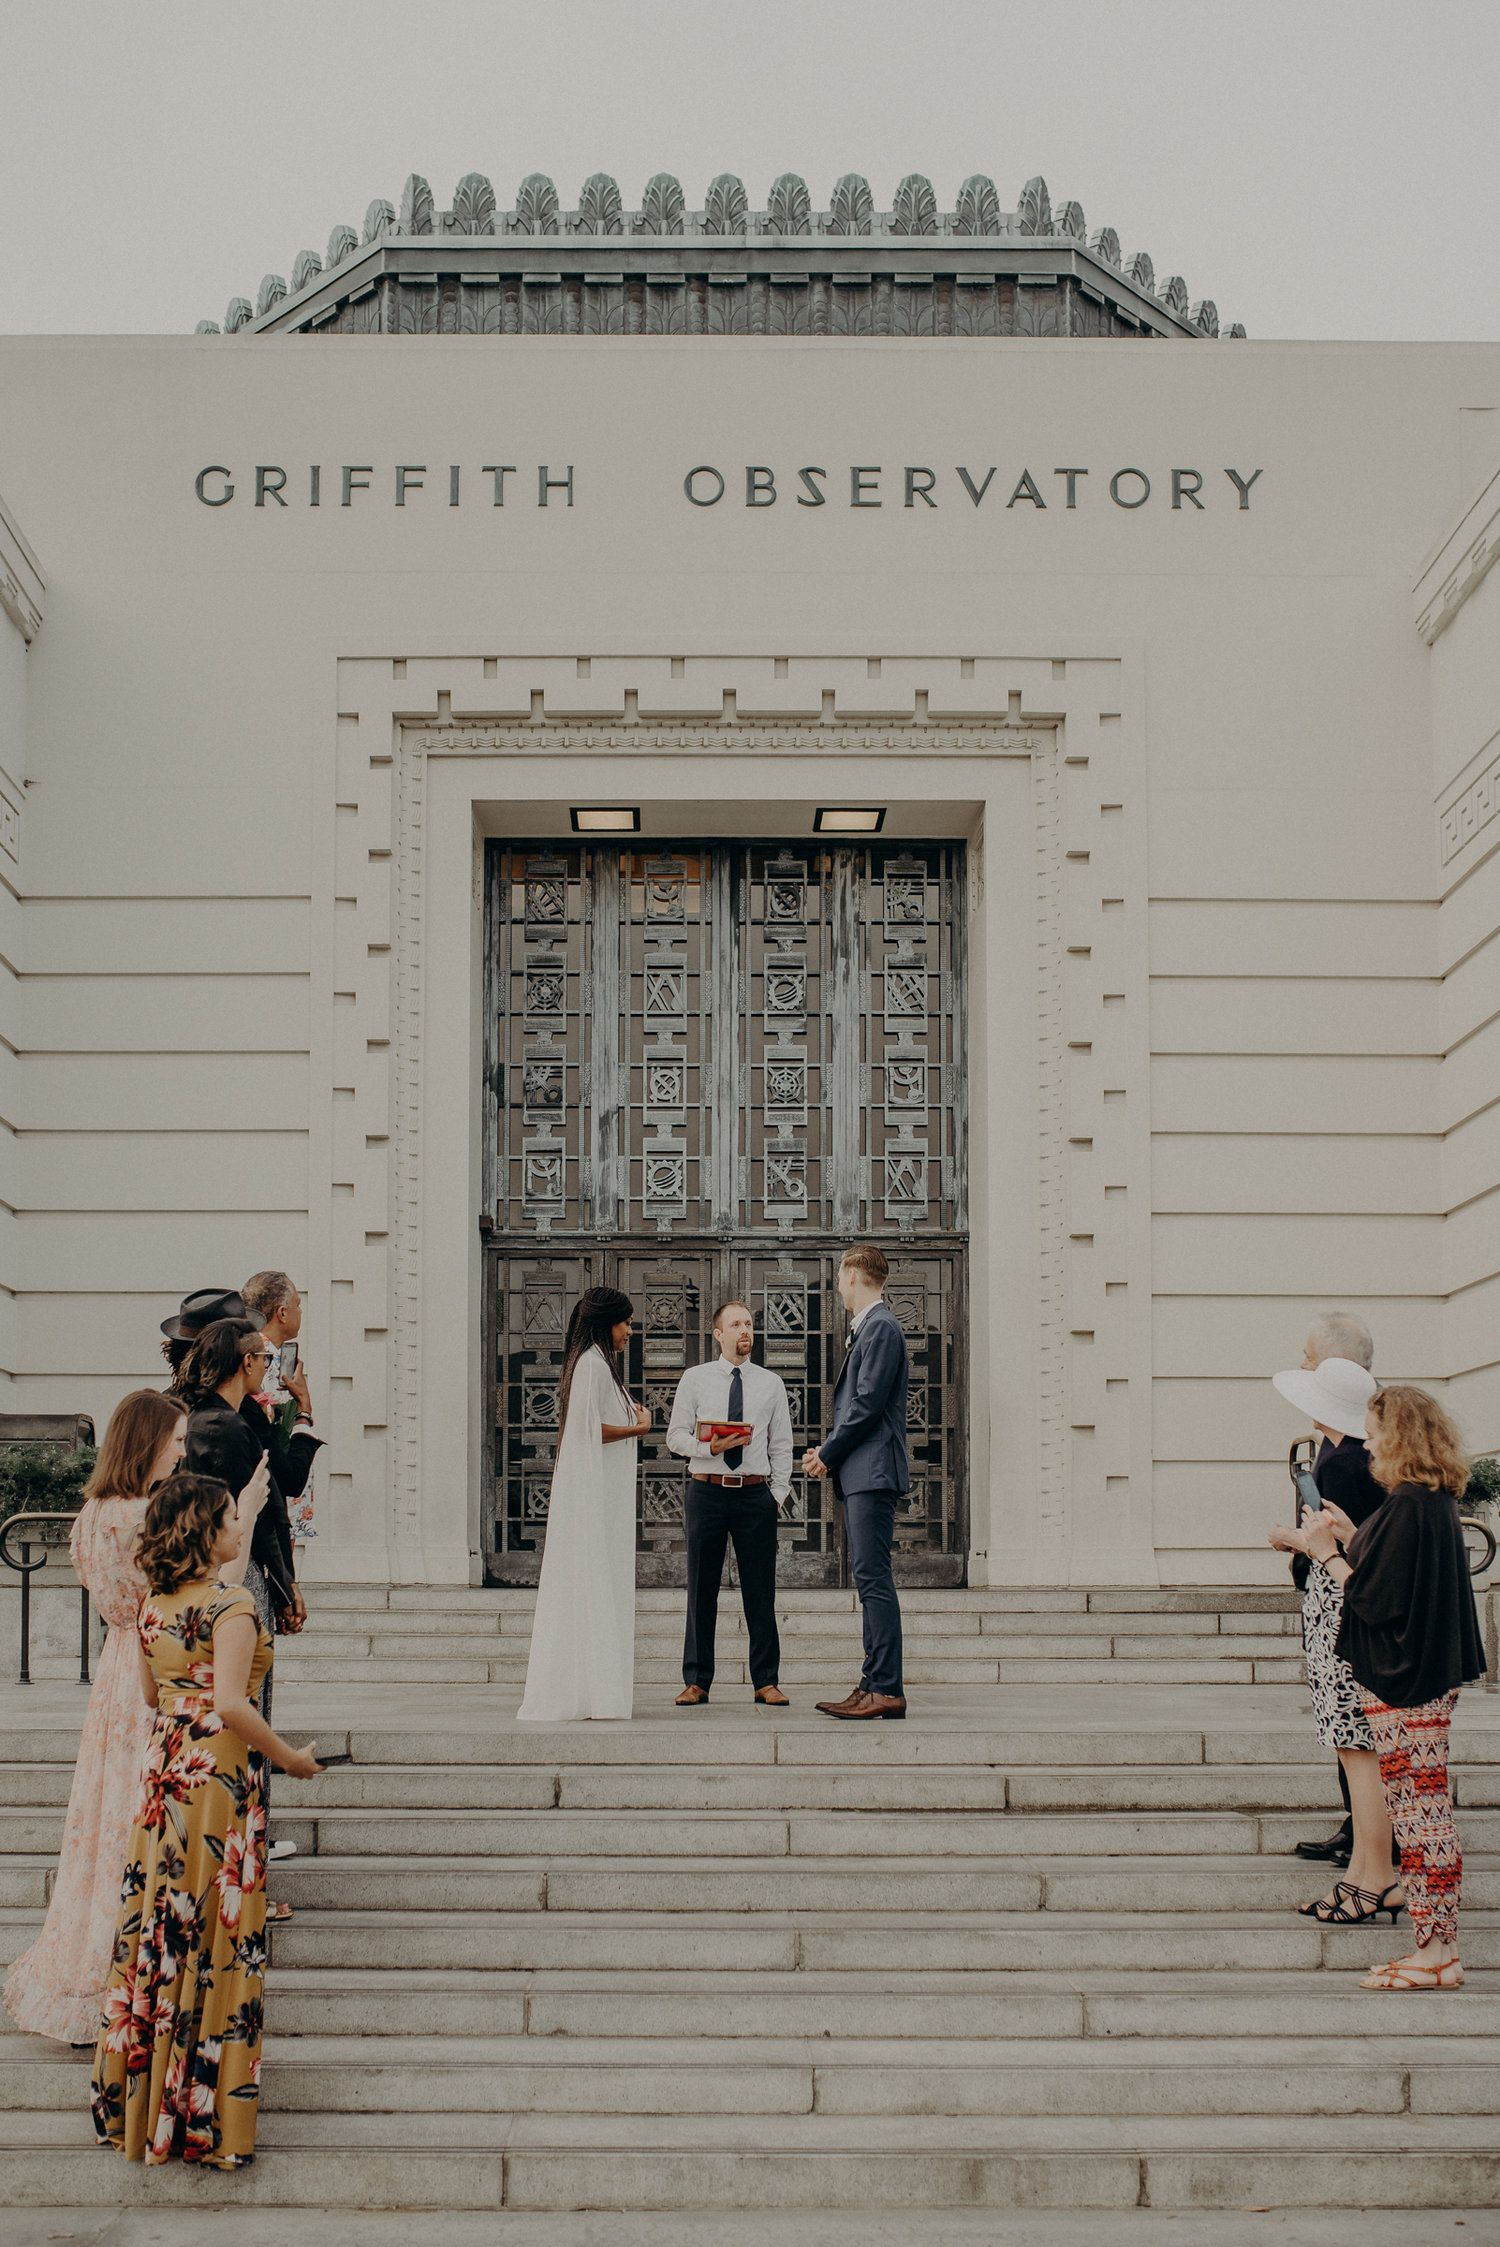 Isaiah Taylor Photography Griffith Observatory Elopement Wedding Photographer In Los Angeles Wedding Los Angeles Wedding Photography Los Angeles Beach Wedding Photography